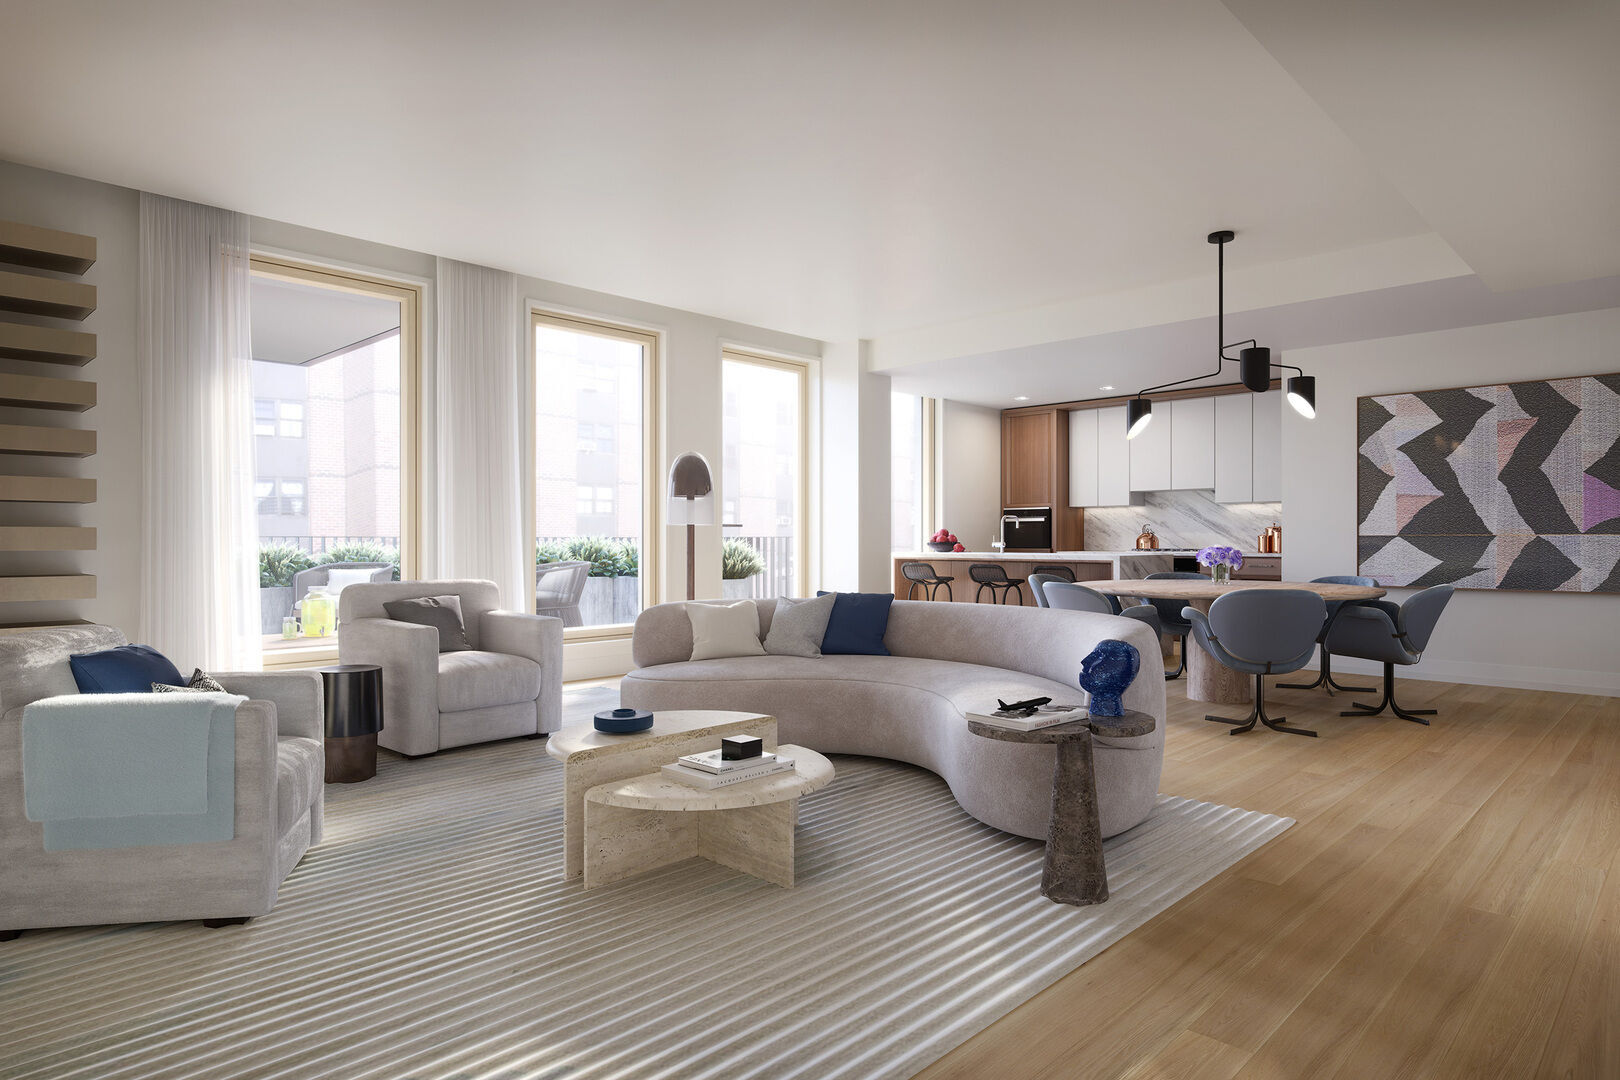 Apartment for sale at 212 West 93rd Street, Apt 8-A